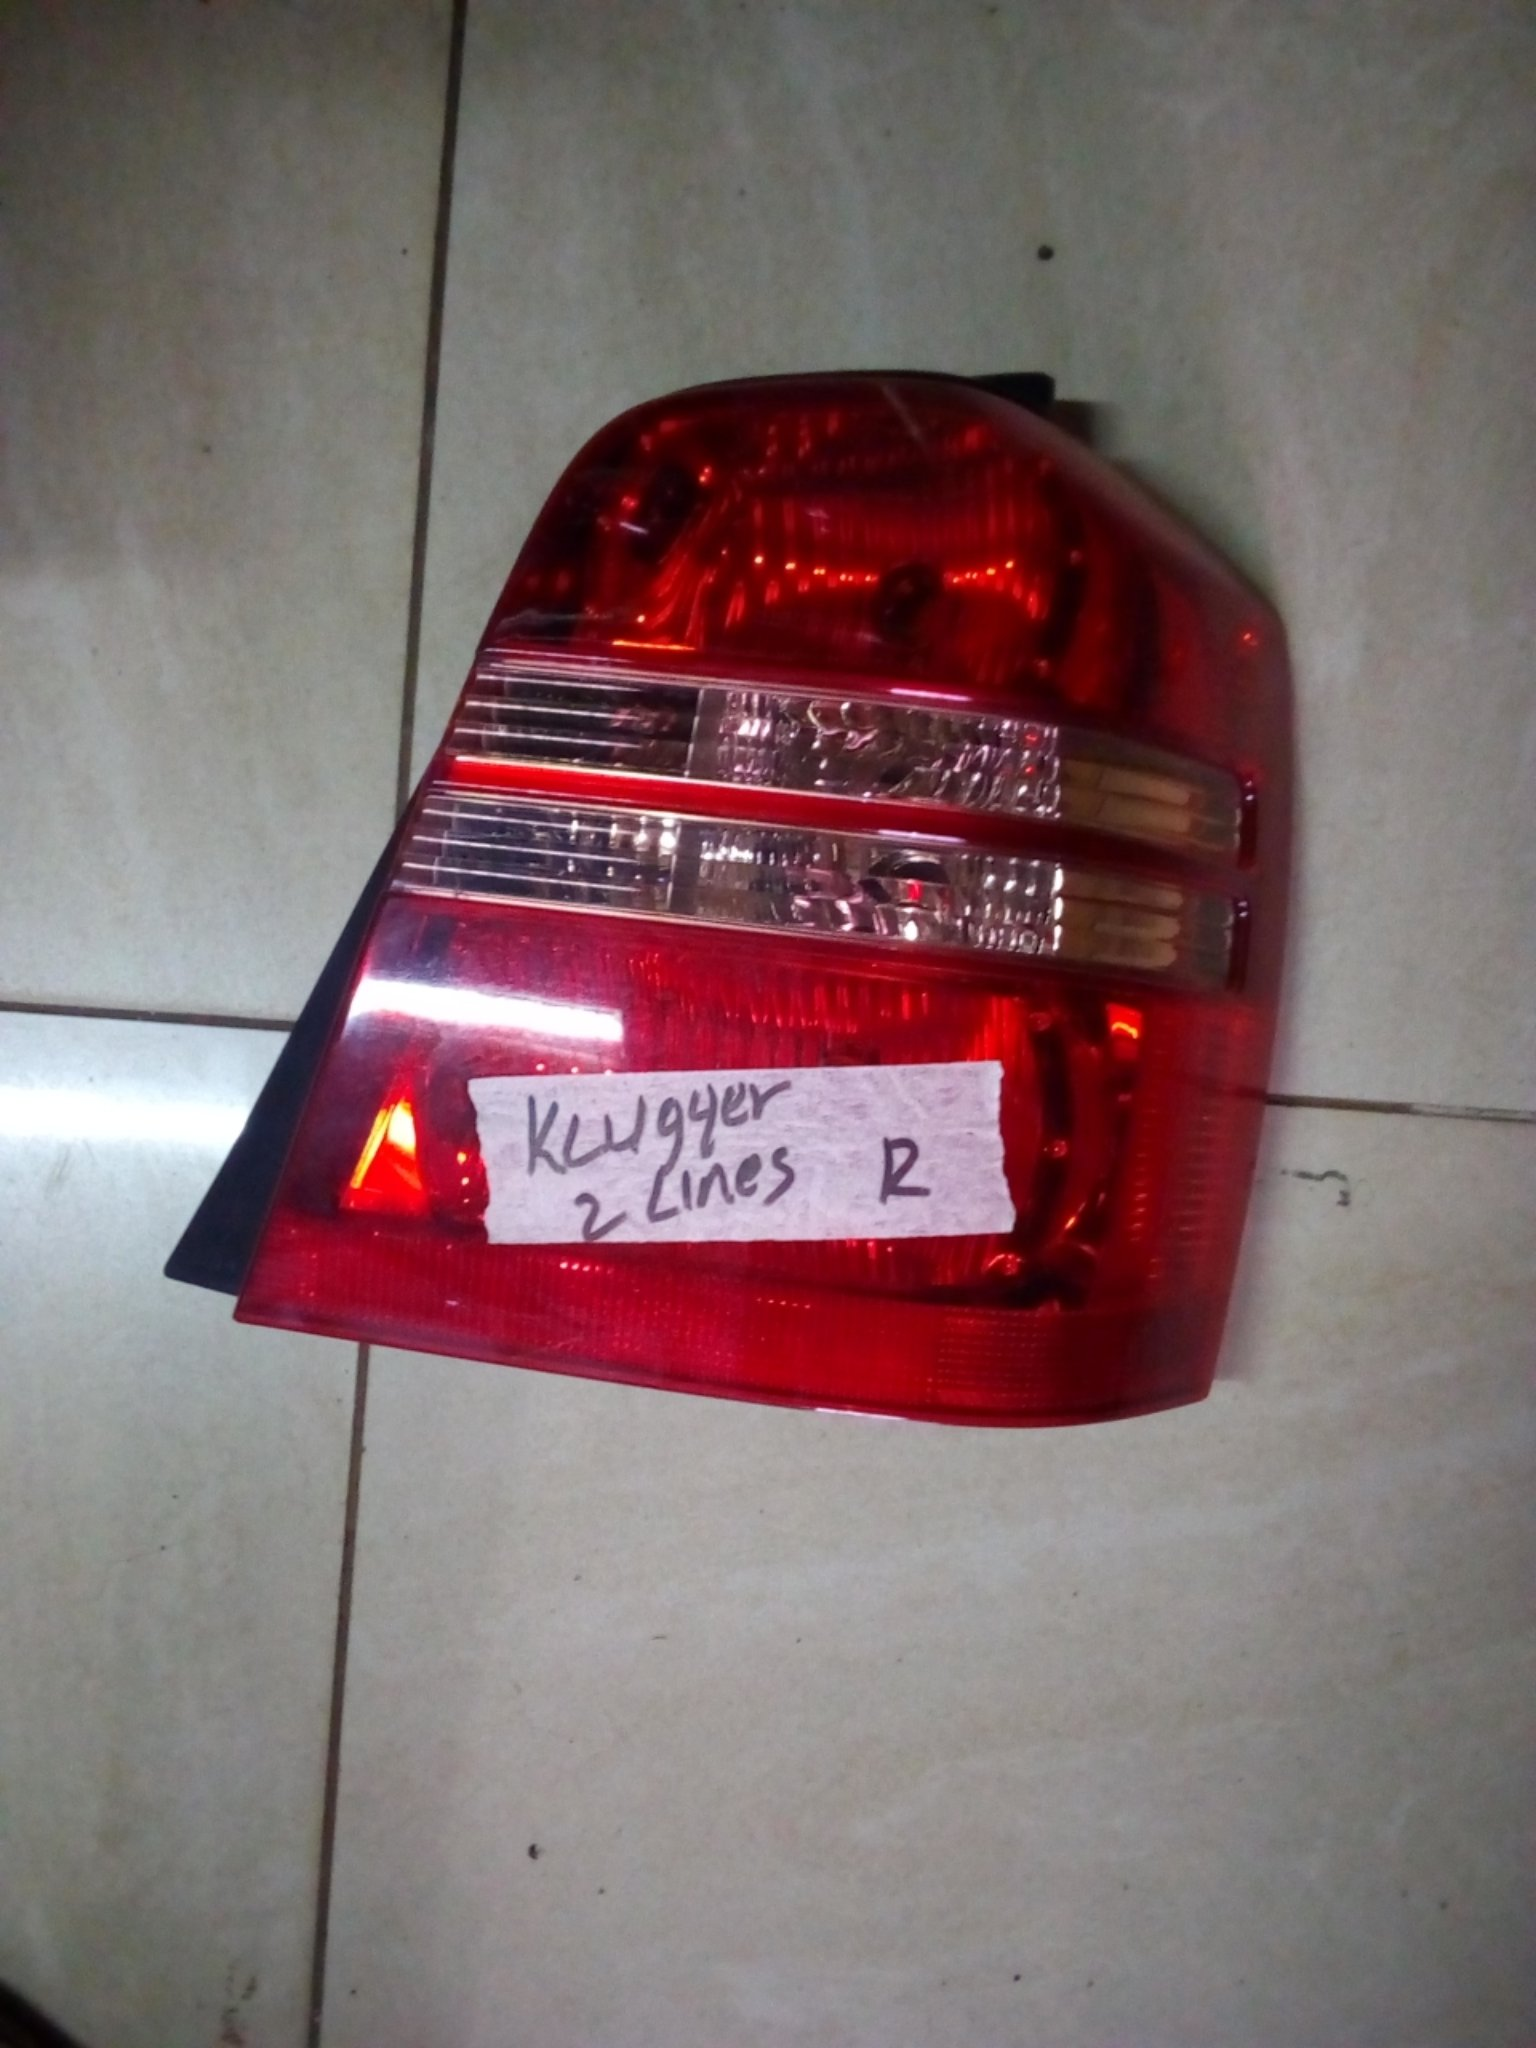 Toyota Kluger tail light kp 0009